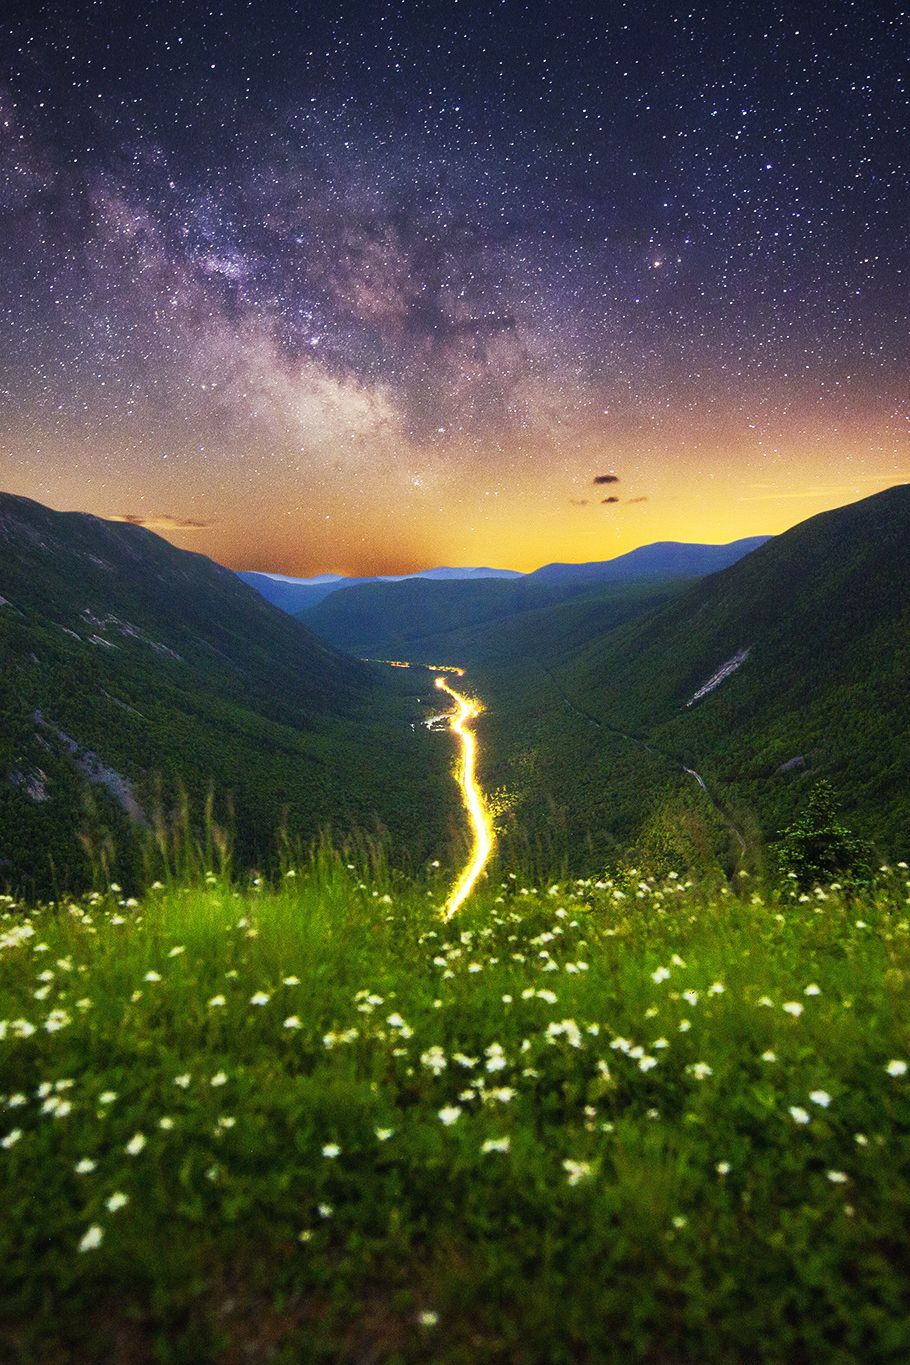 Midnight Vista II, Crawford Notch State Park, NewHampshire, by Christopher Georgia on 500px. (Trimming)